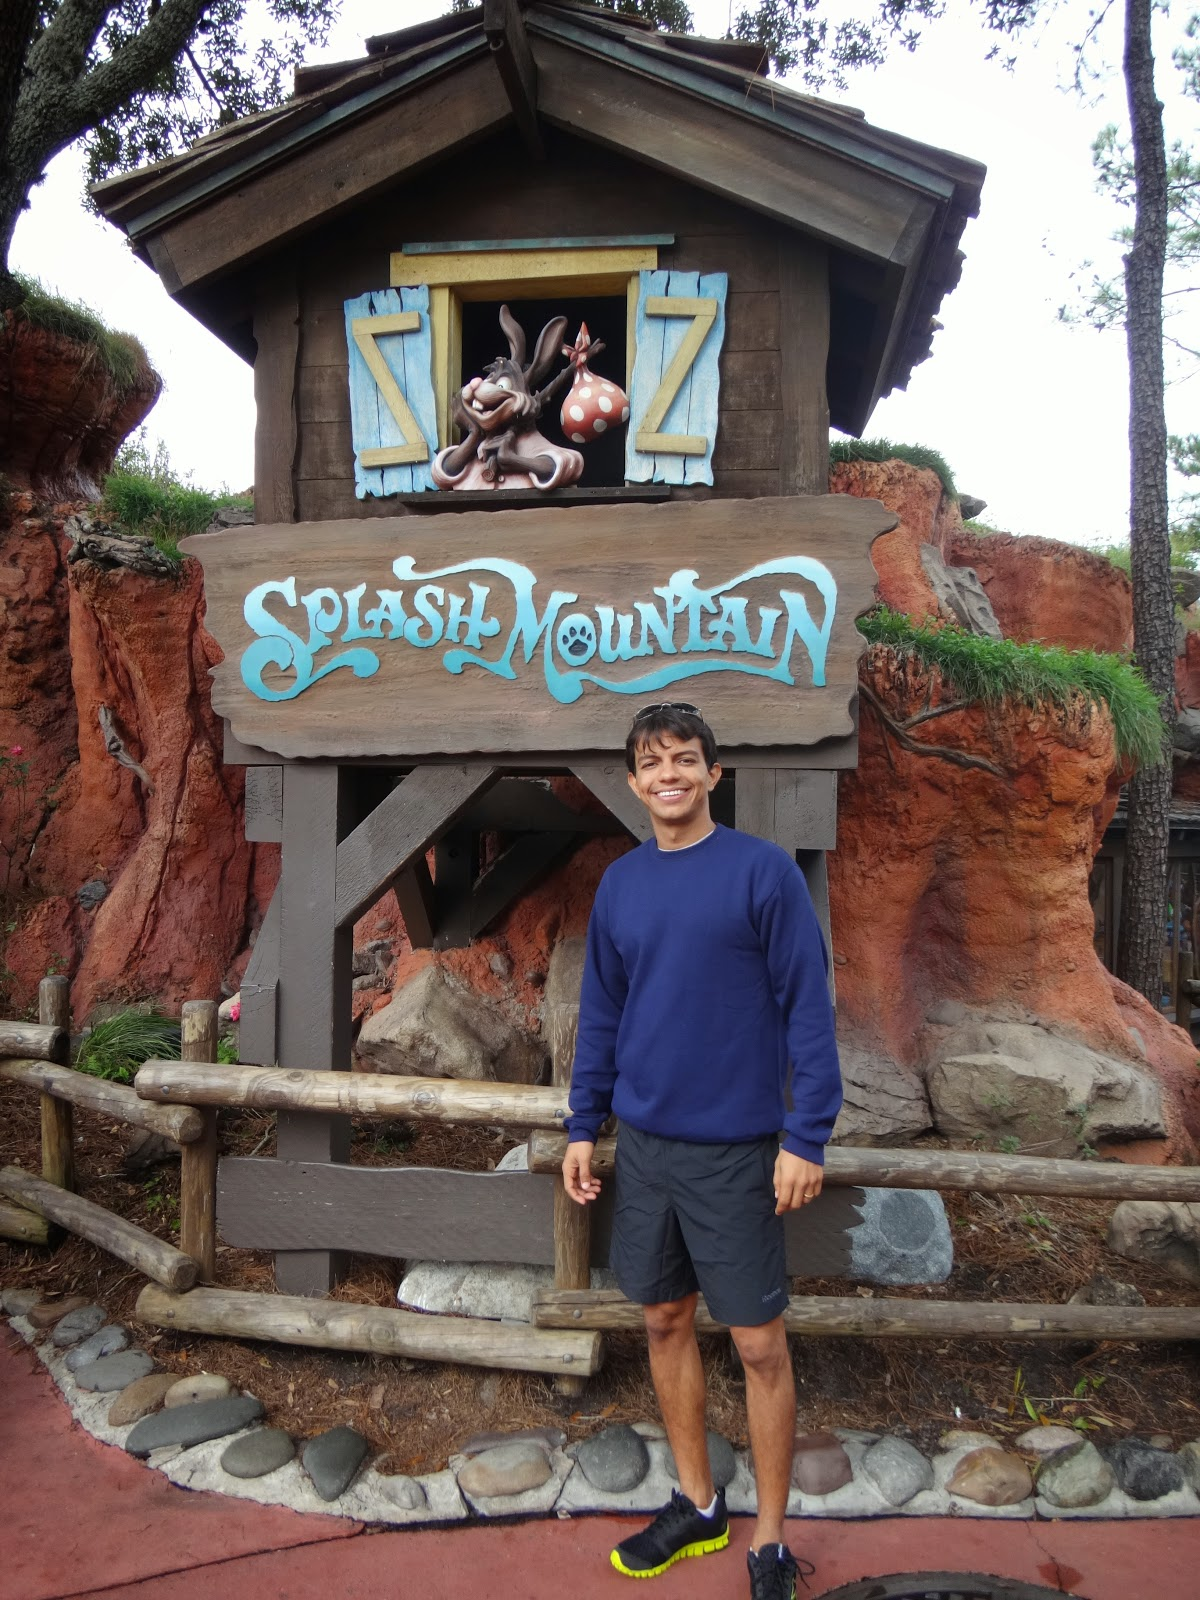 splash mountain - magic kingdom - orlando, eua